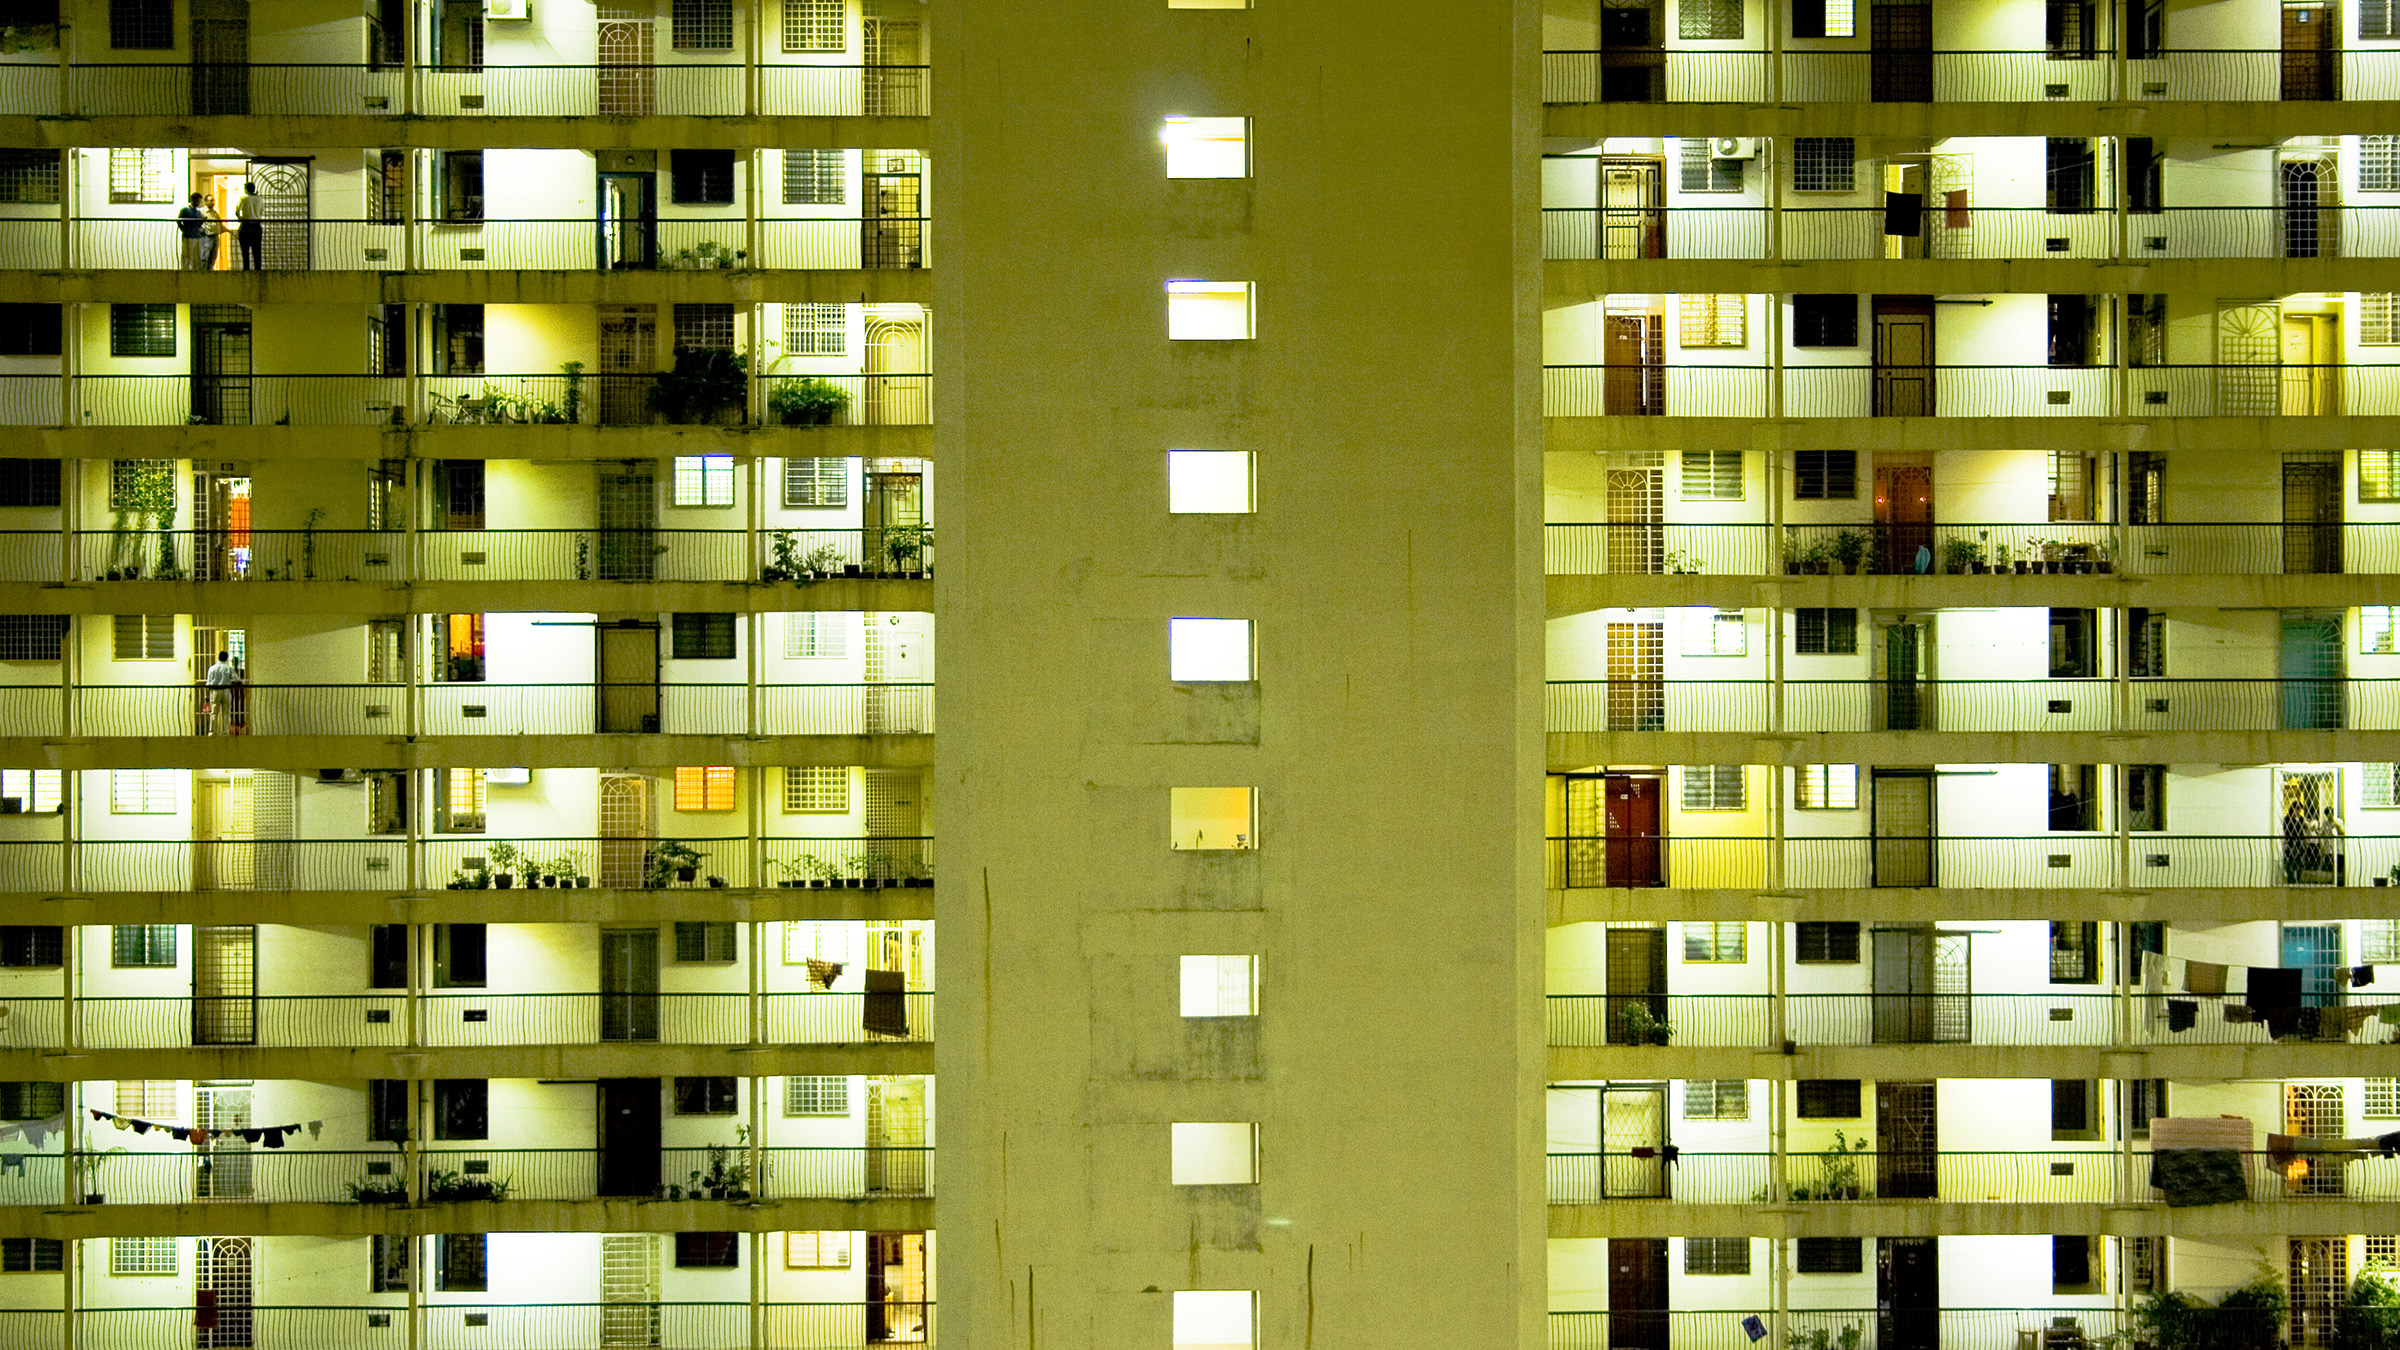 Night image of apartments